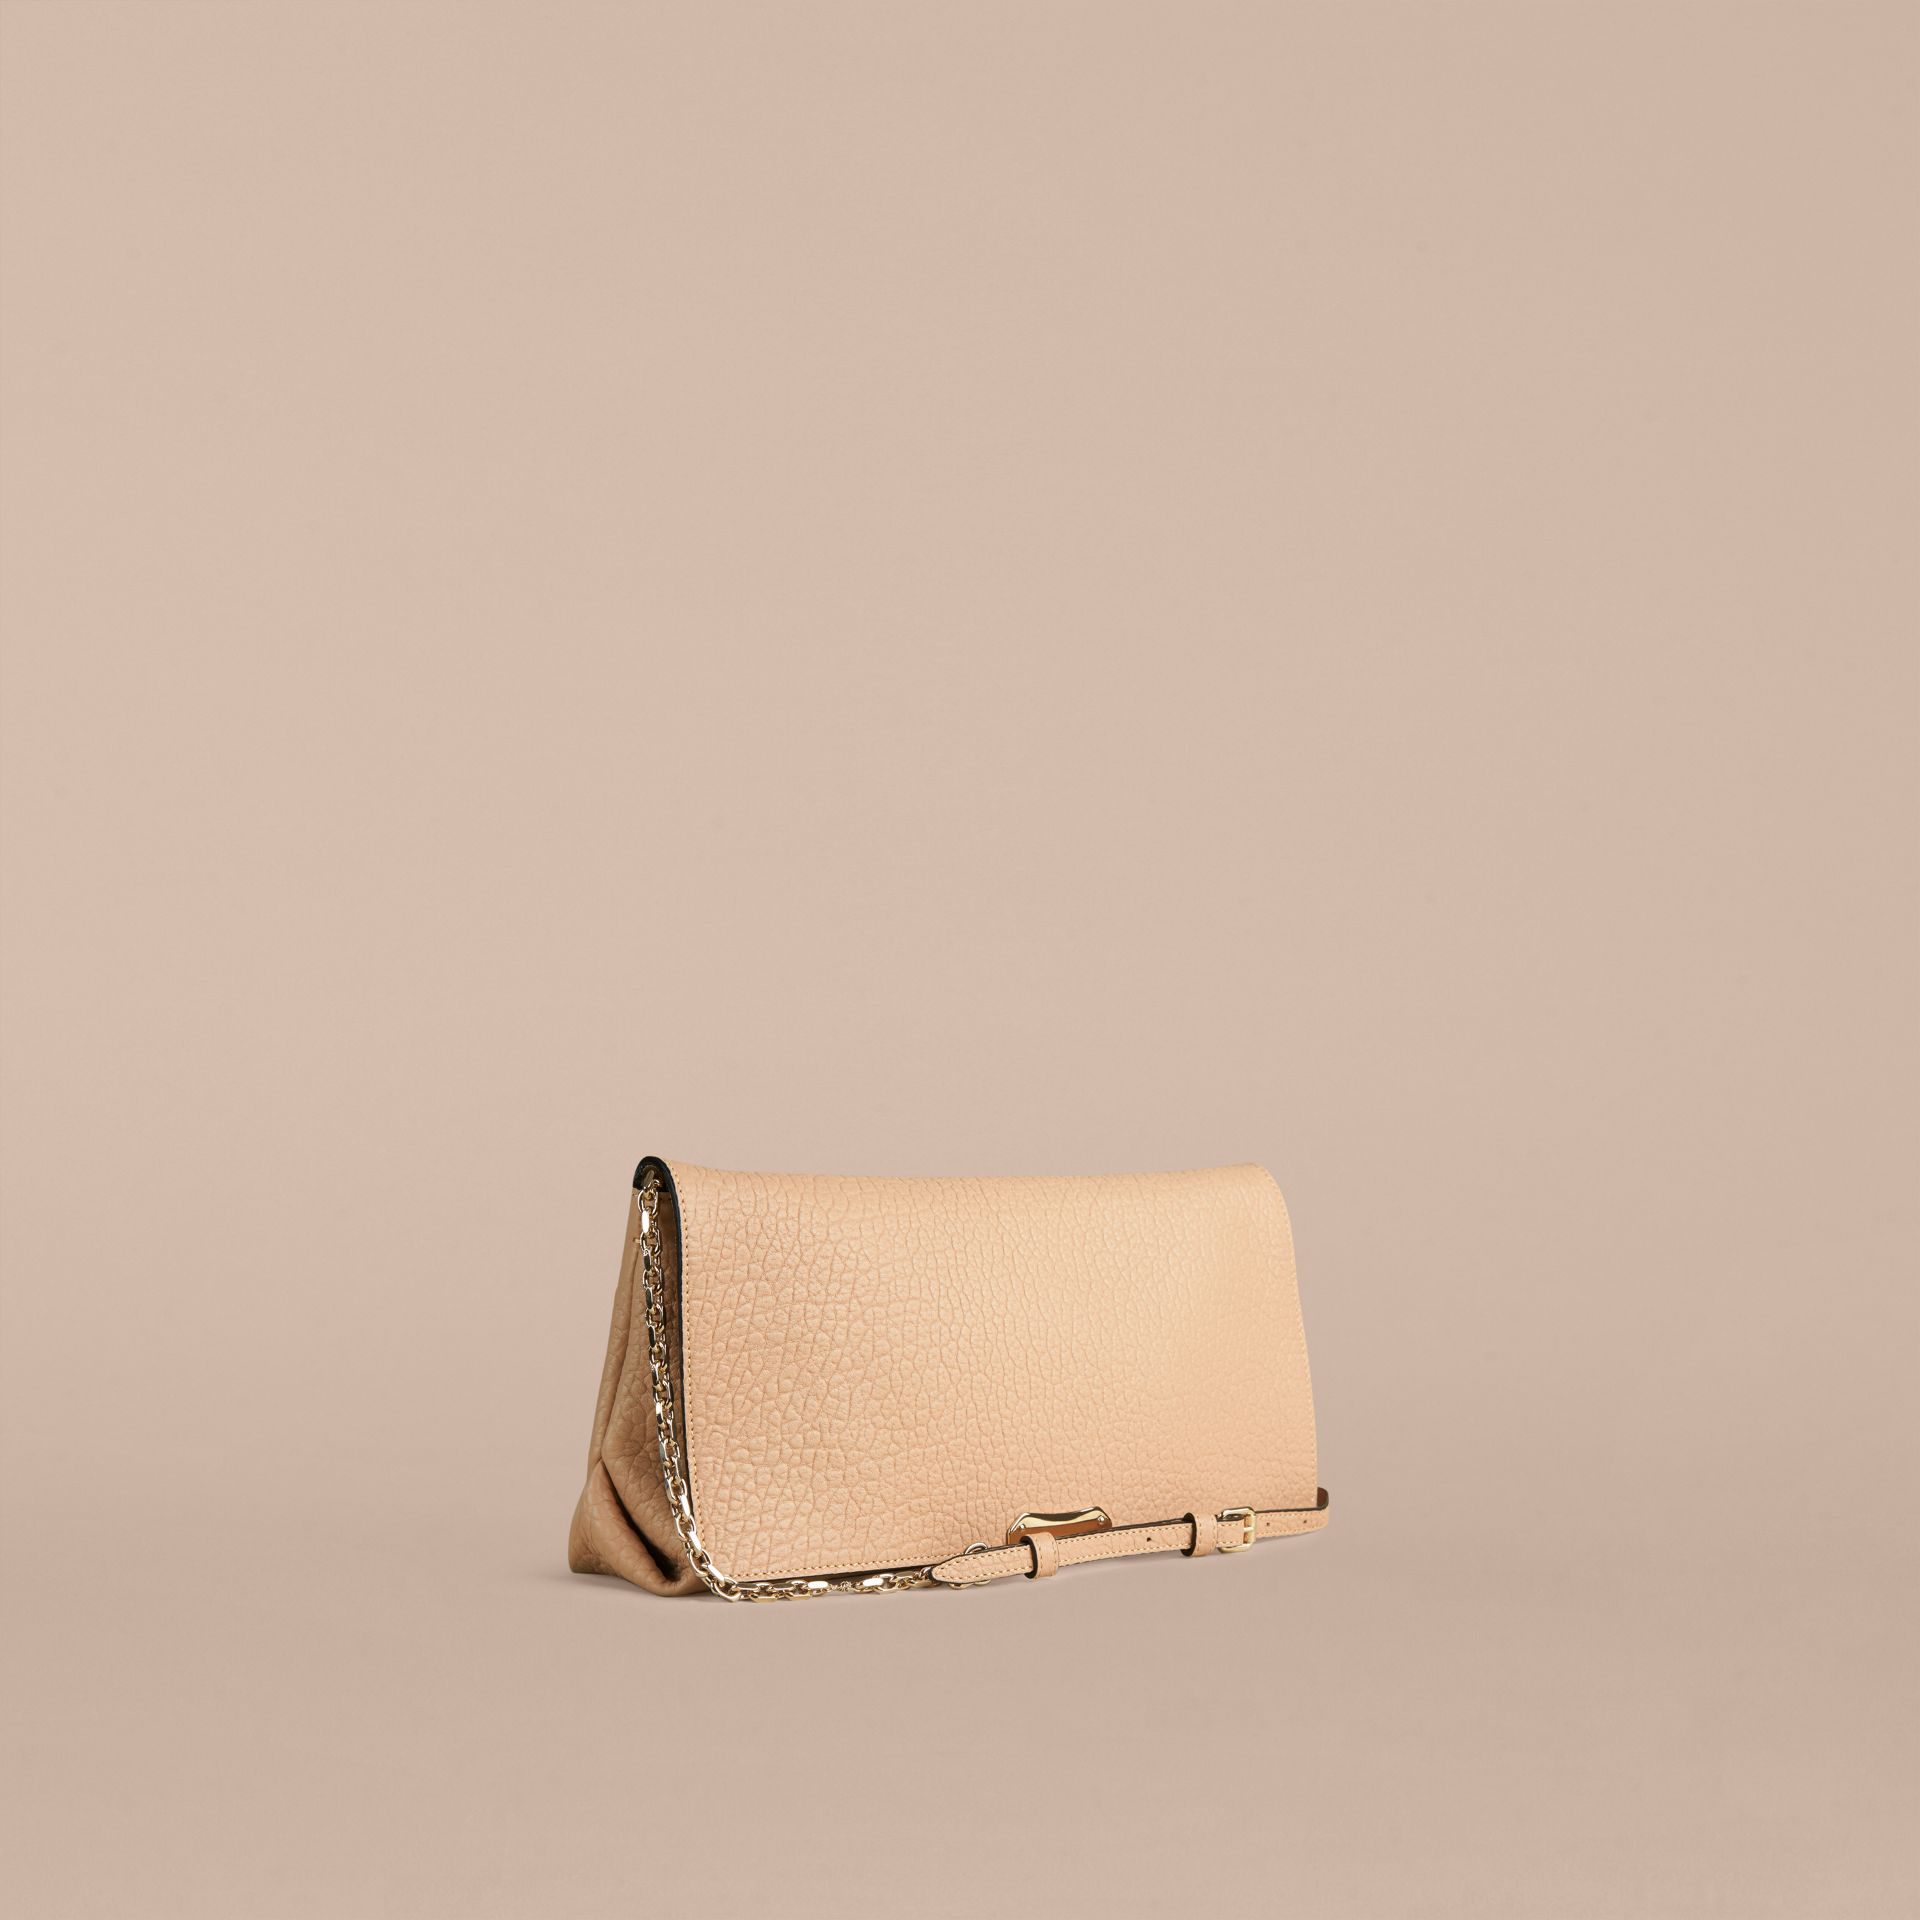 Pale apricot Medium Signature Grain Leather Clutch Bag Pale Apricot - gallery image 1